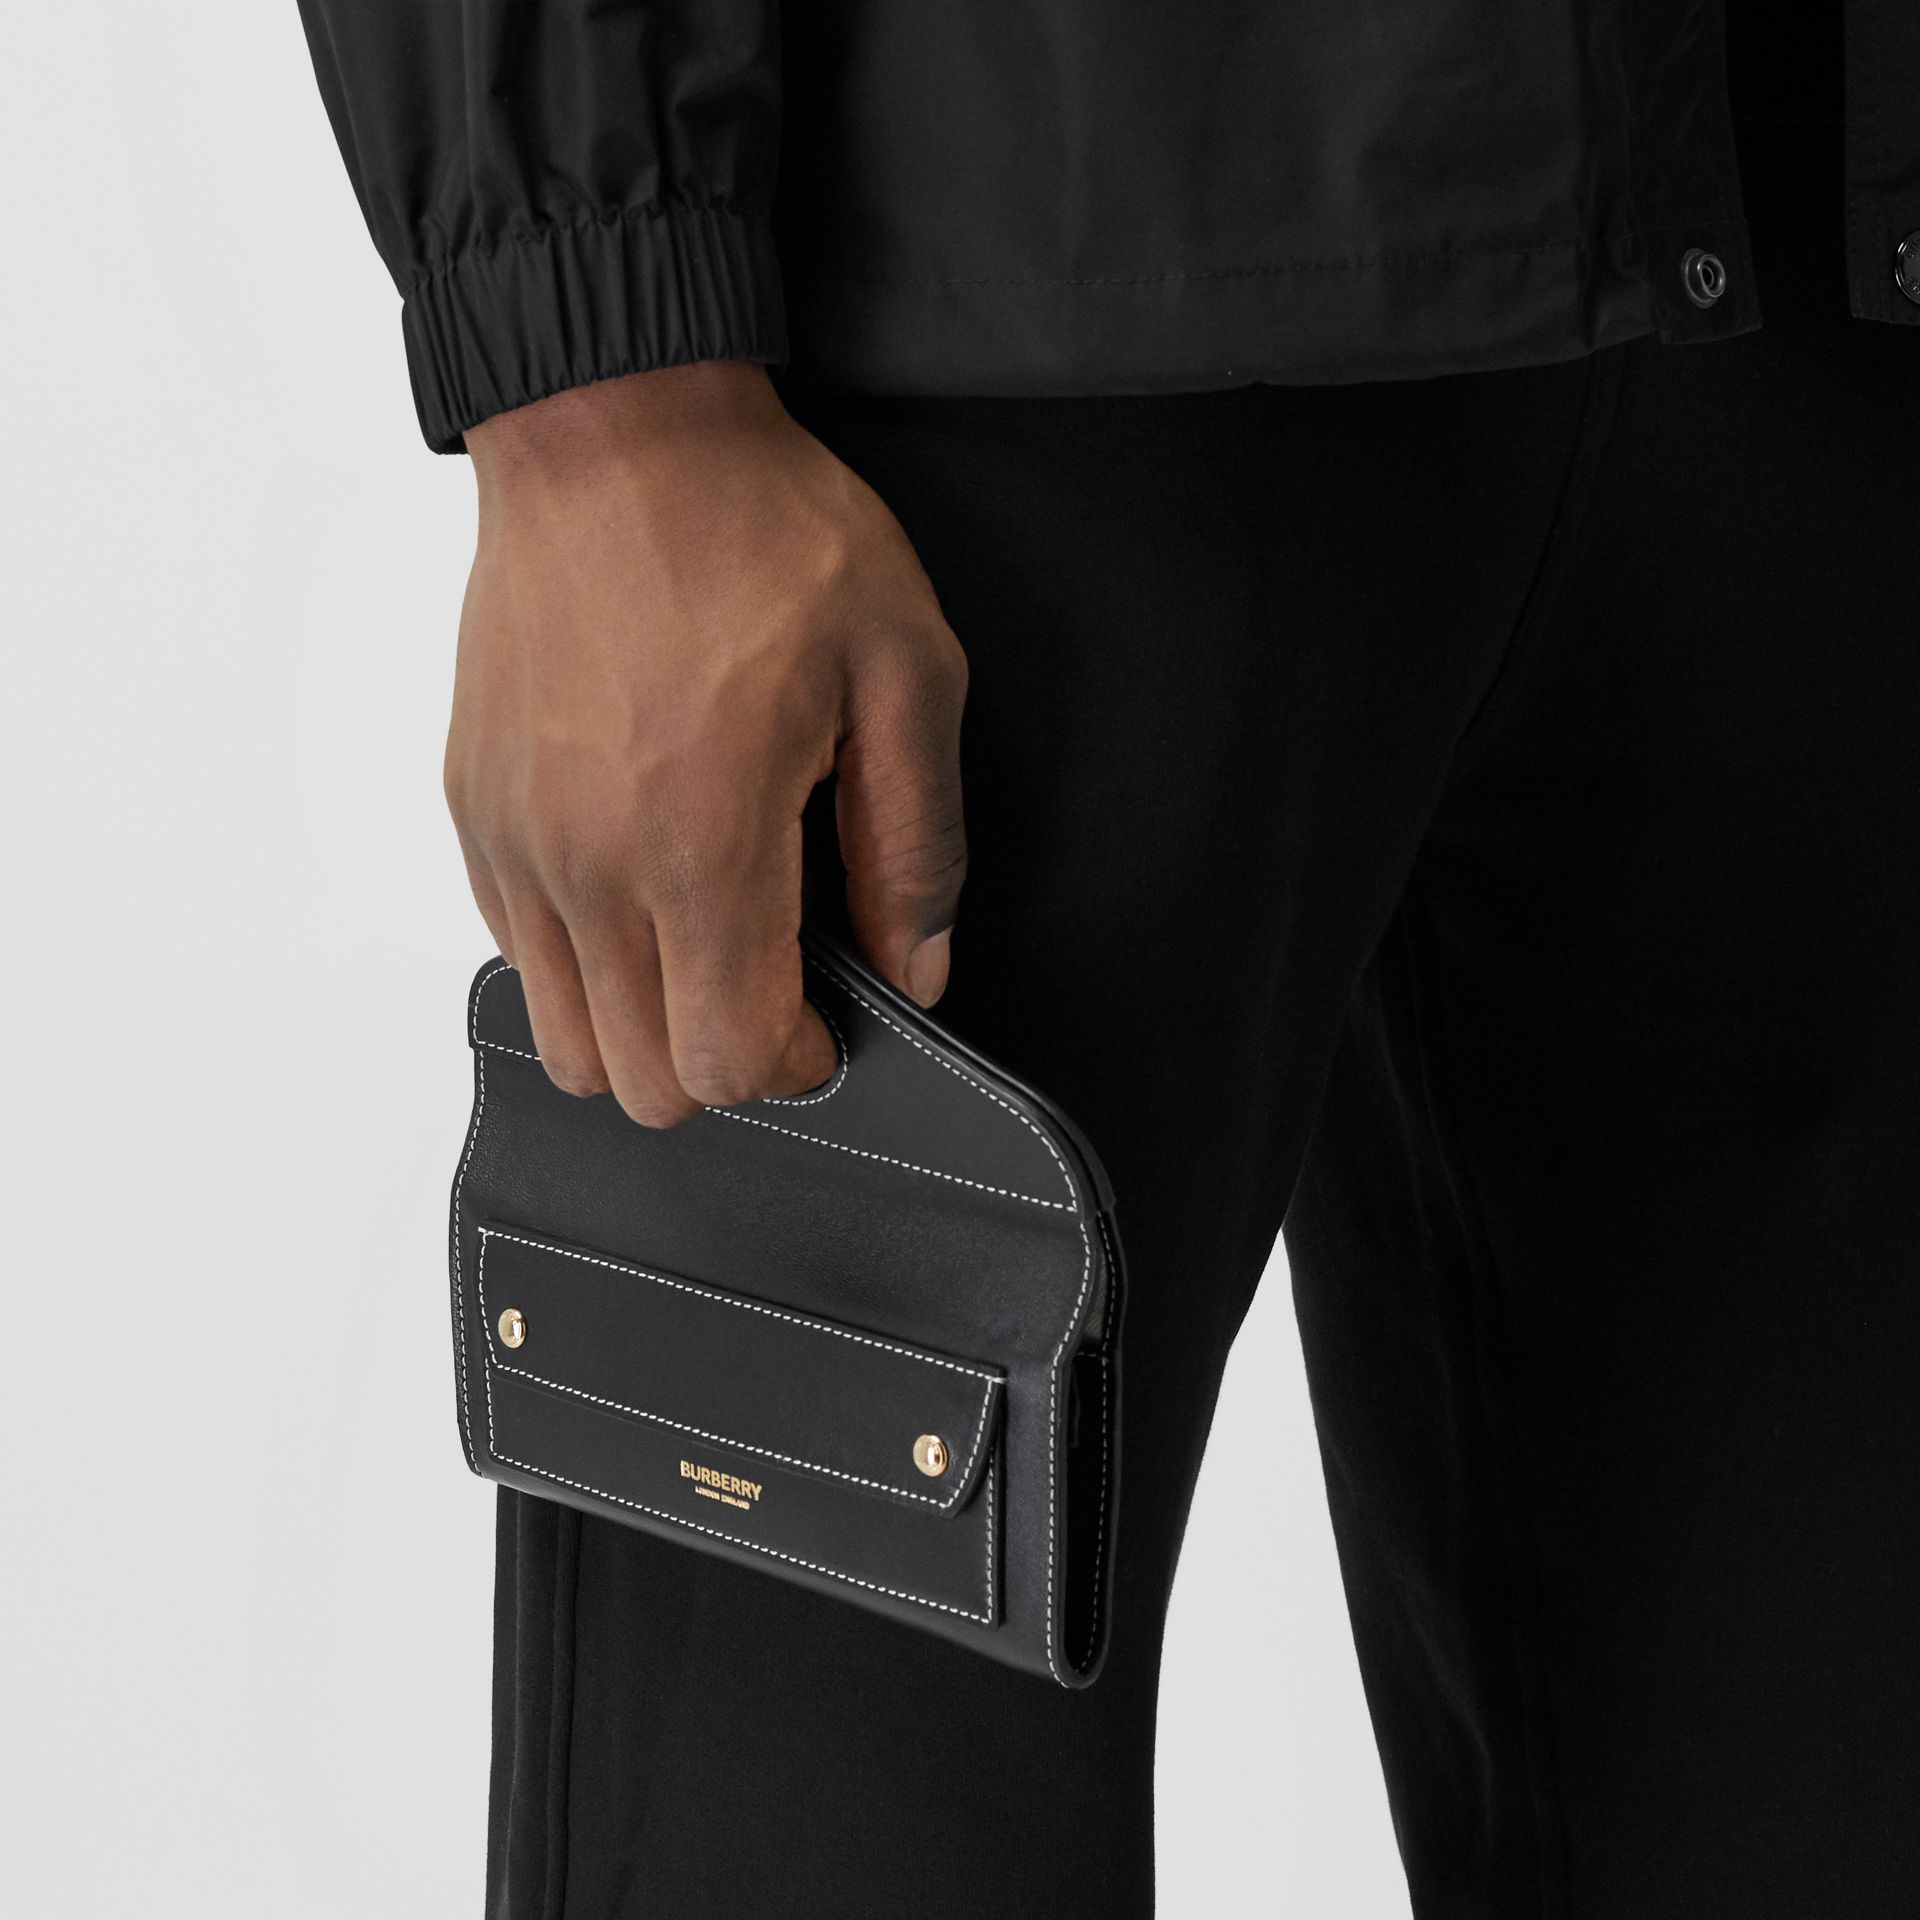 Mini Topstitched Lambskin Pocket Clutch in Black | Burberry - gallery image 12